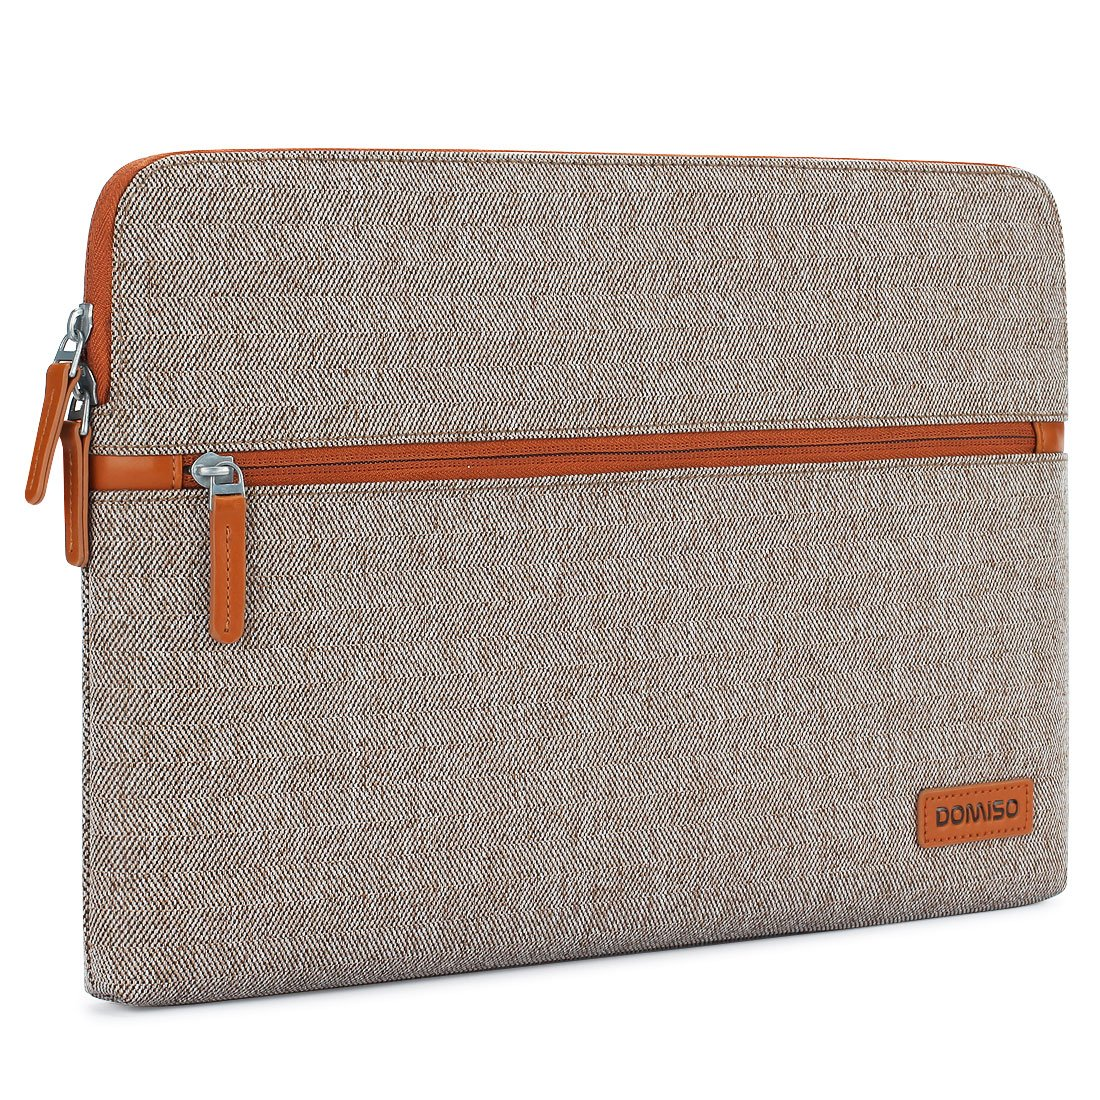 DOMISO 13.3 Inch Laptop Sleeve Canvas Case Tablet Cover Bag for 13-13.3 Inch Laptops/13'' MacBook Pro Retina/Dell Inspiron 13 XPS 13/Lenovo YOGA 720 13.3''/HP/ASUS/Acer/MSI, Brown